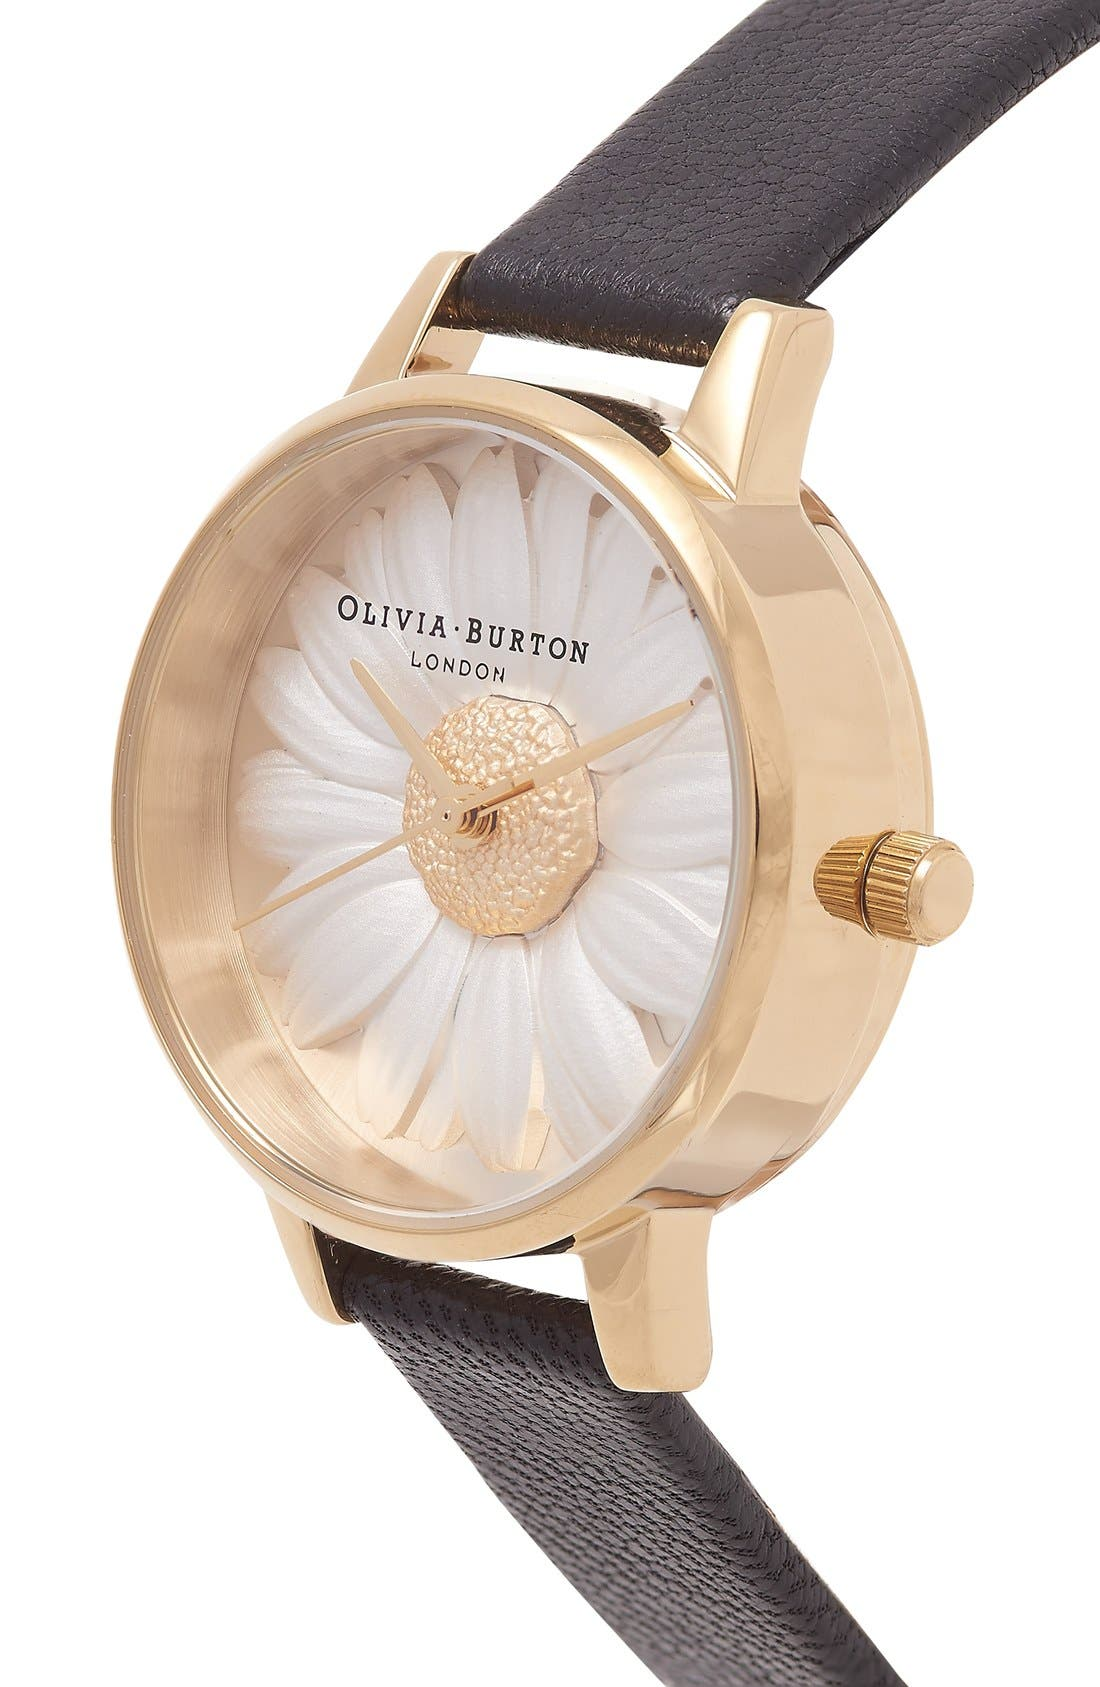 3D Daisy Leather Strap Watch, 30mm,                             Alternate thumbnail 8, color,                             BLACK/ GOLD